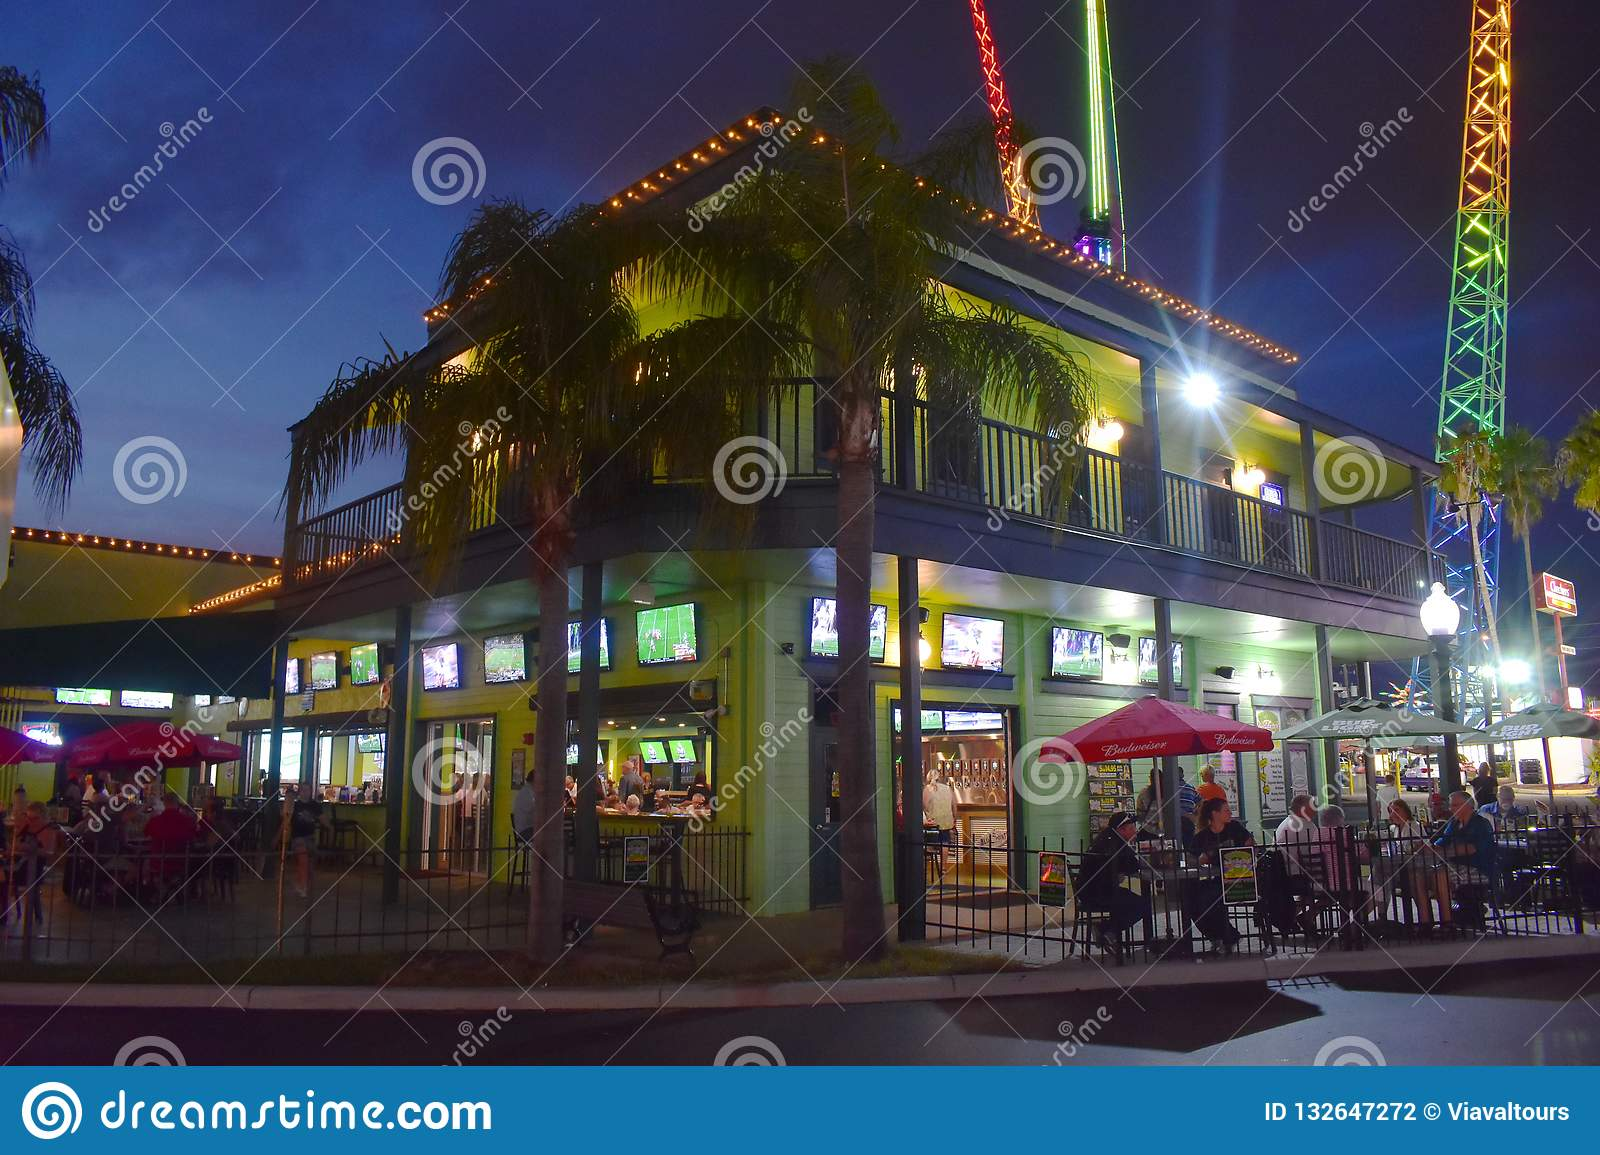 Green Vintage Sport Bar And Colorful Attractions Park At Old